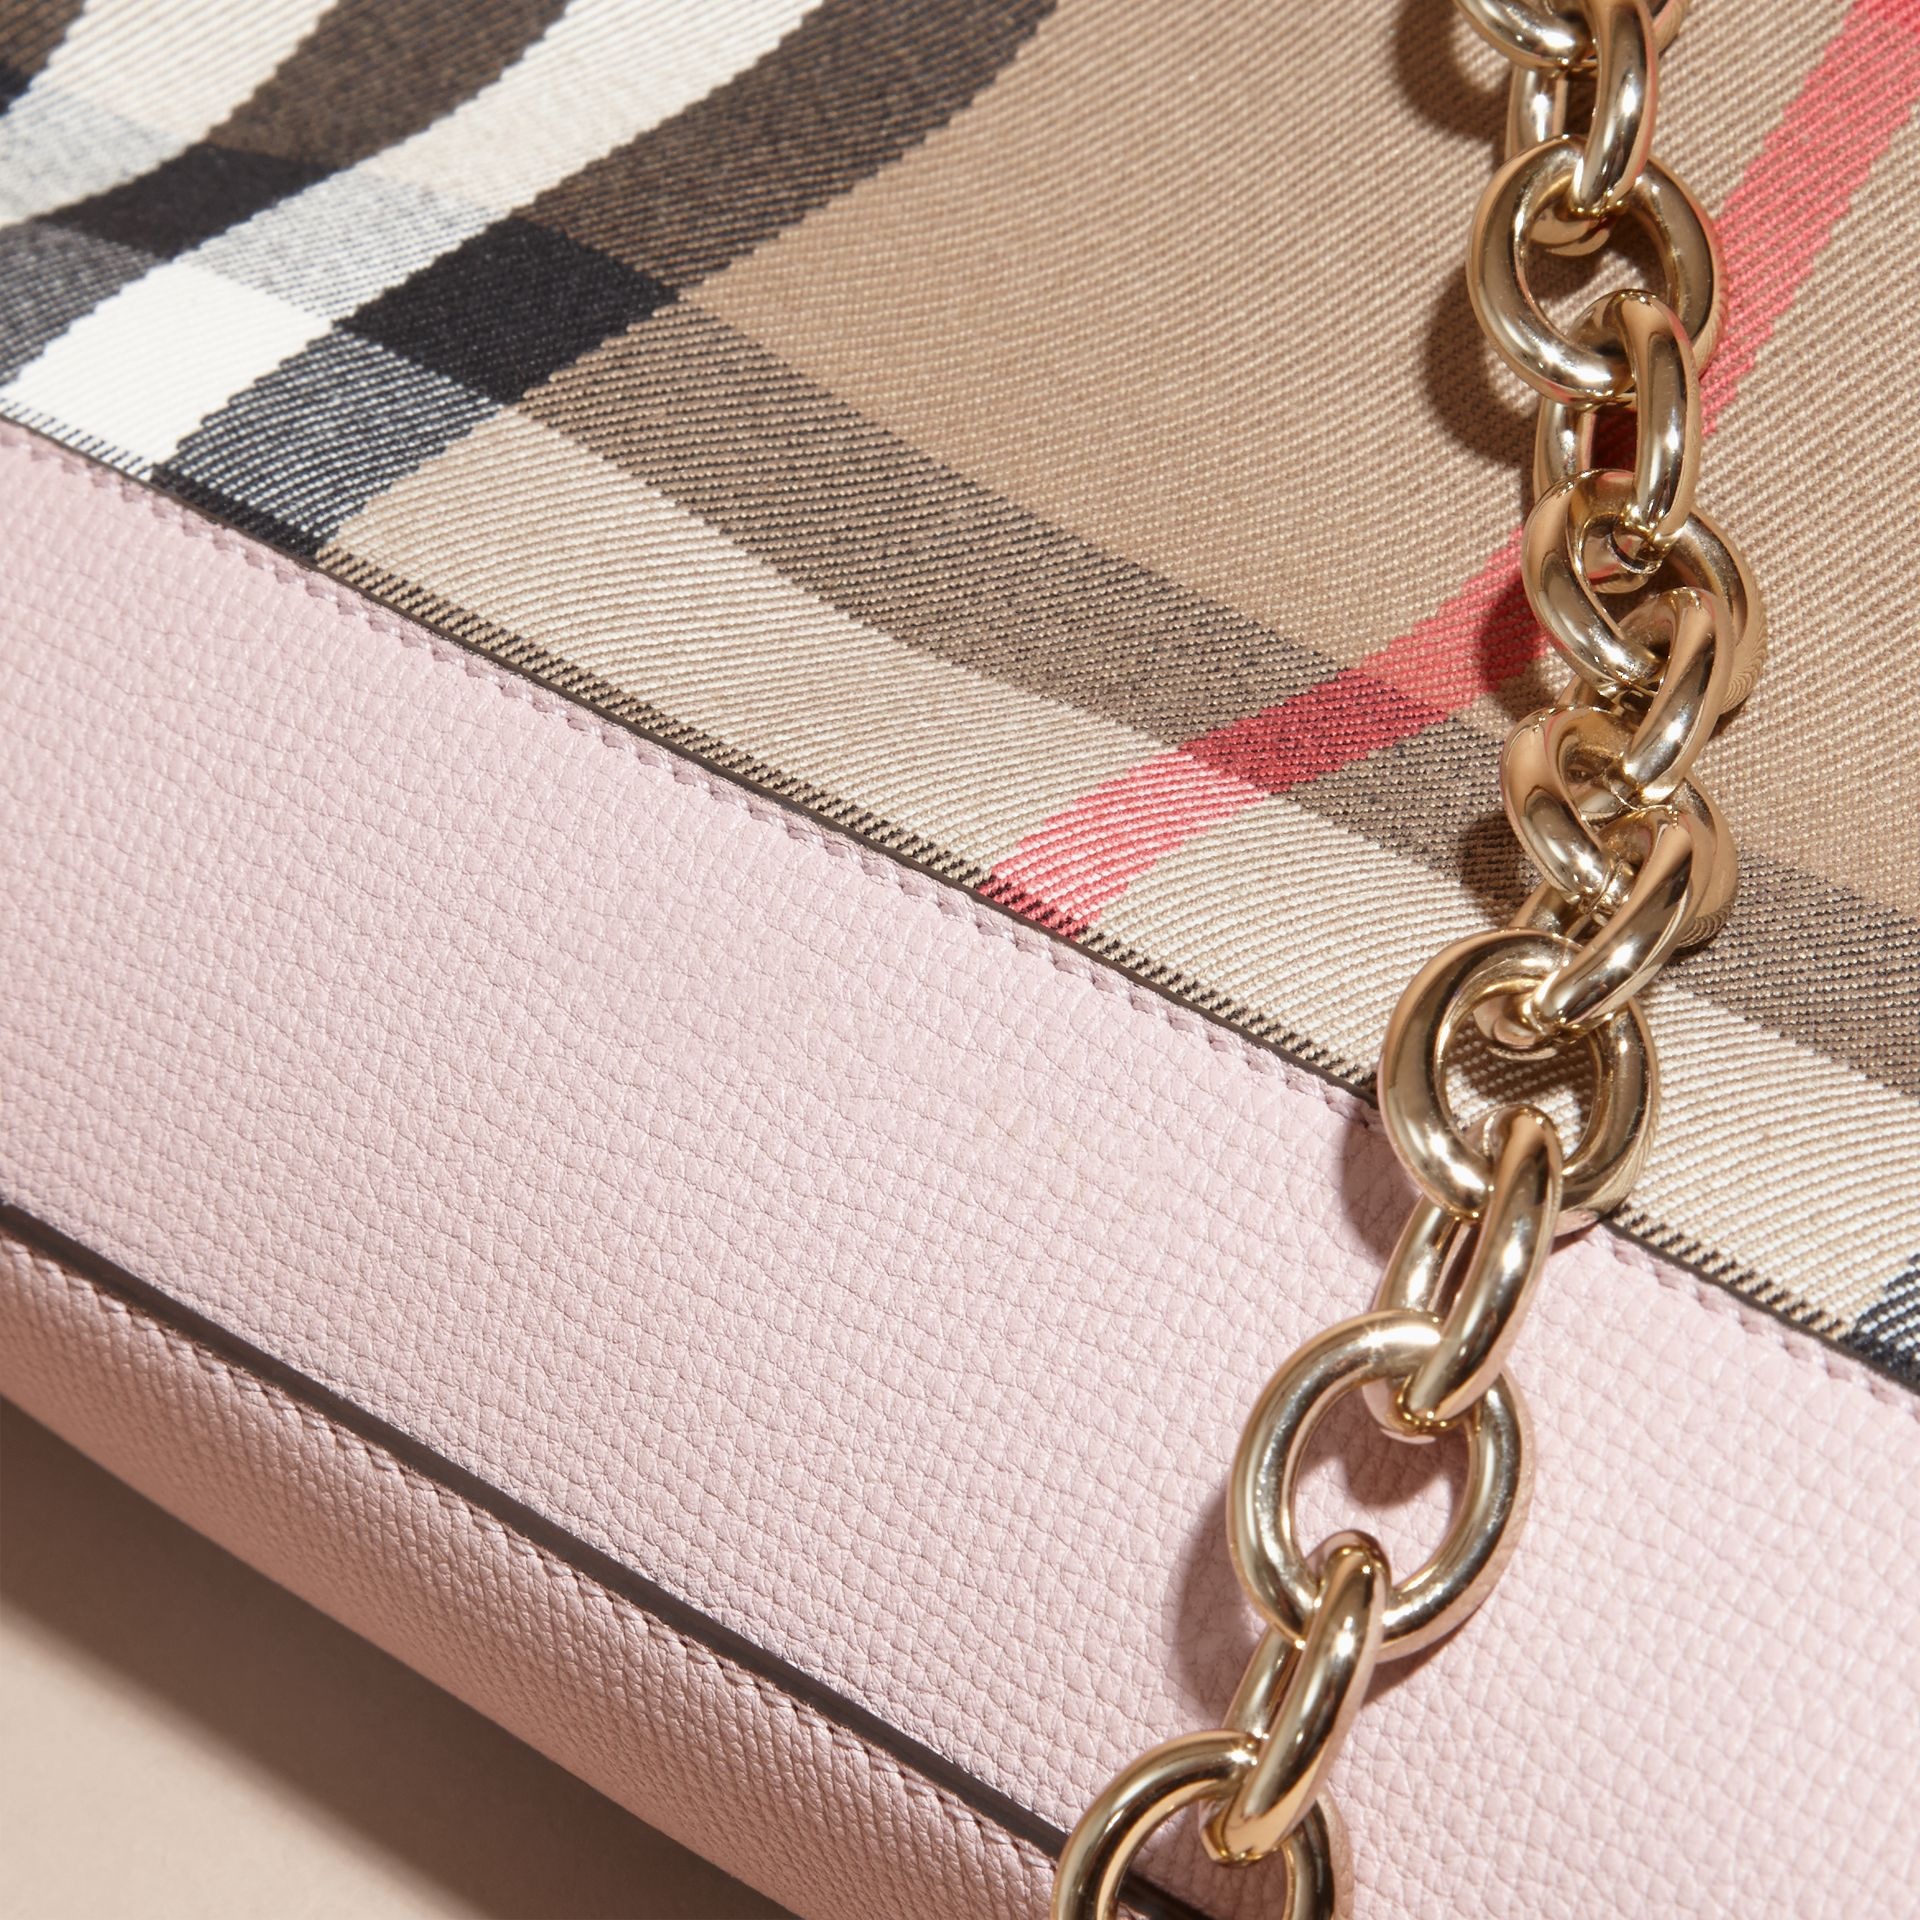 House Check and Leather Clutch Bag in Pale Orchid - Women | Burberry Australia - gallery image 7